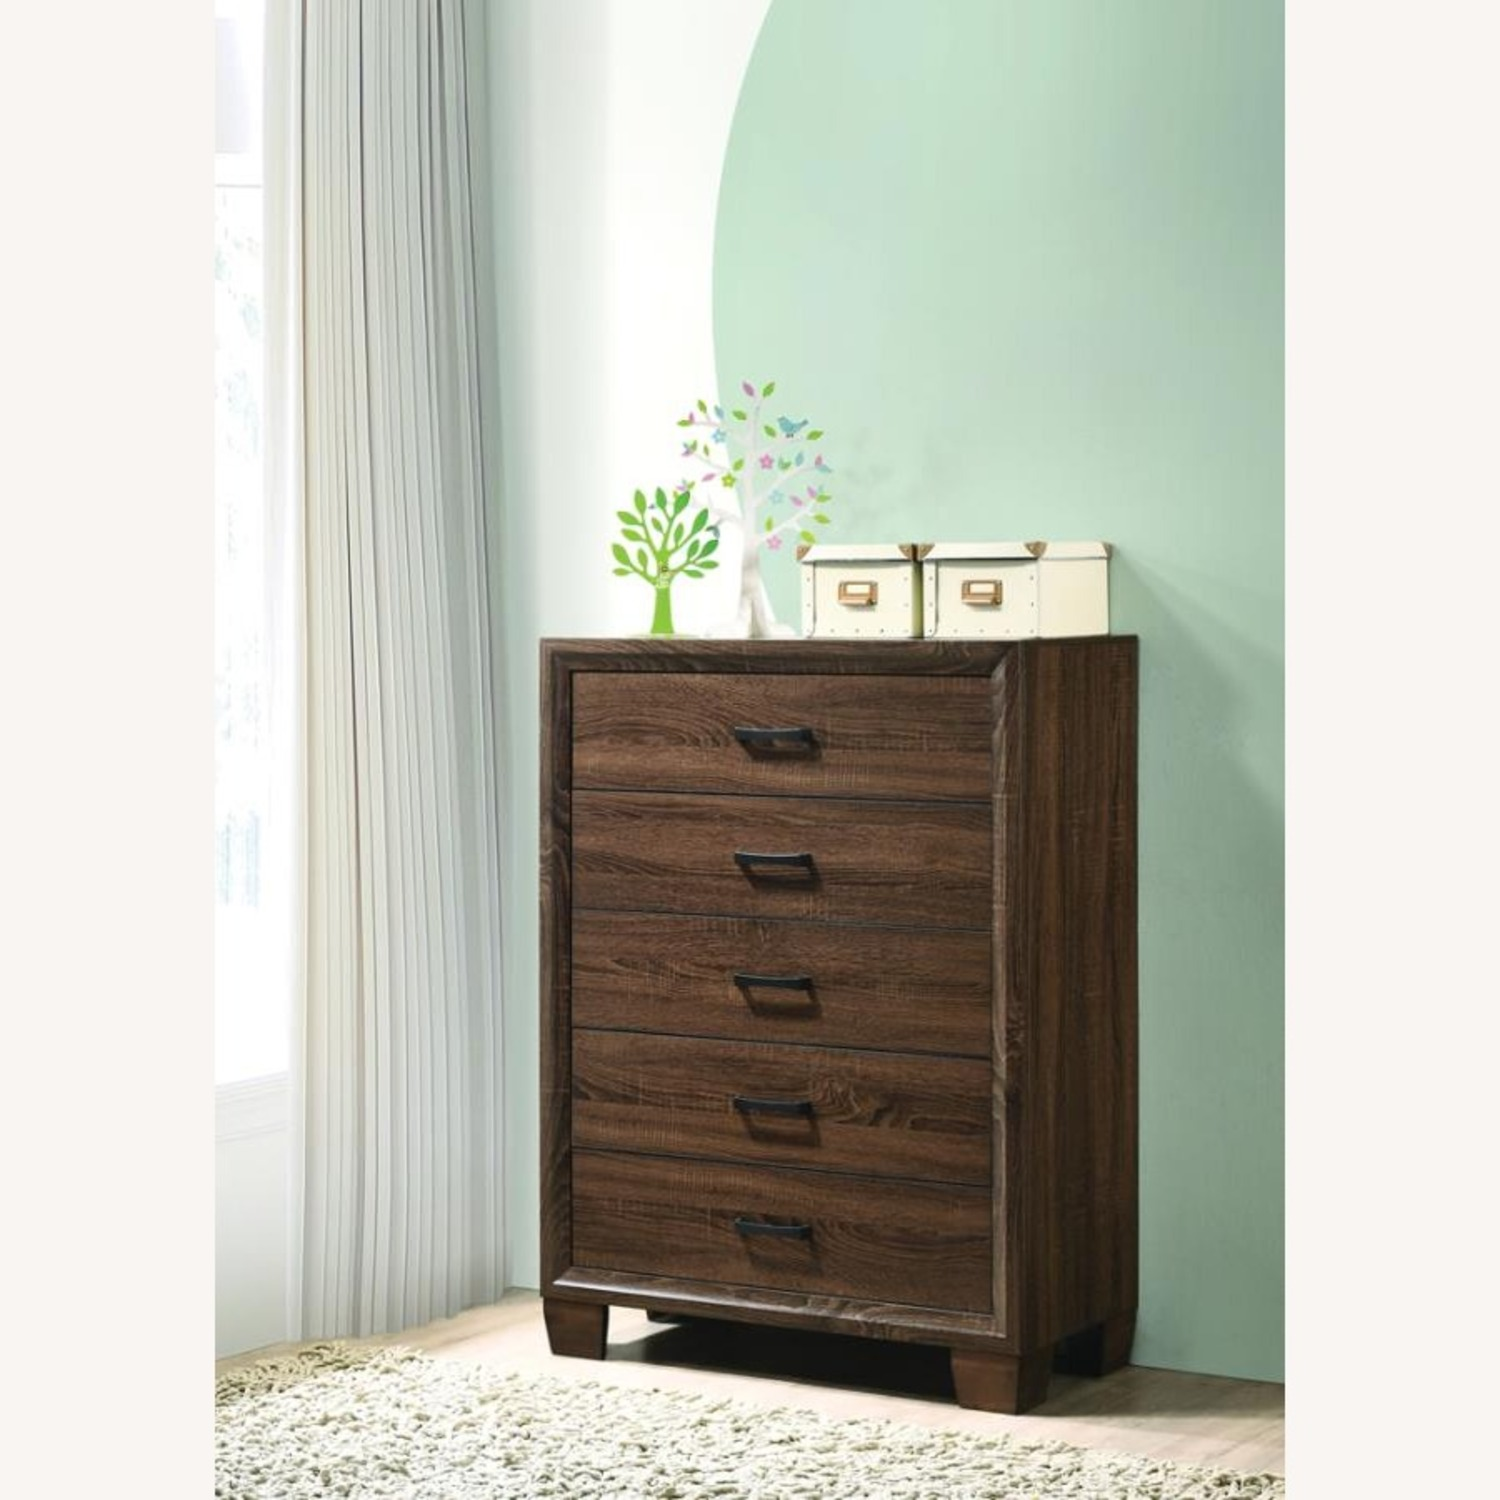 Modern Chest In Warm Brown Finish - image-5